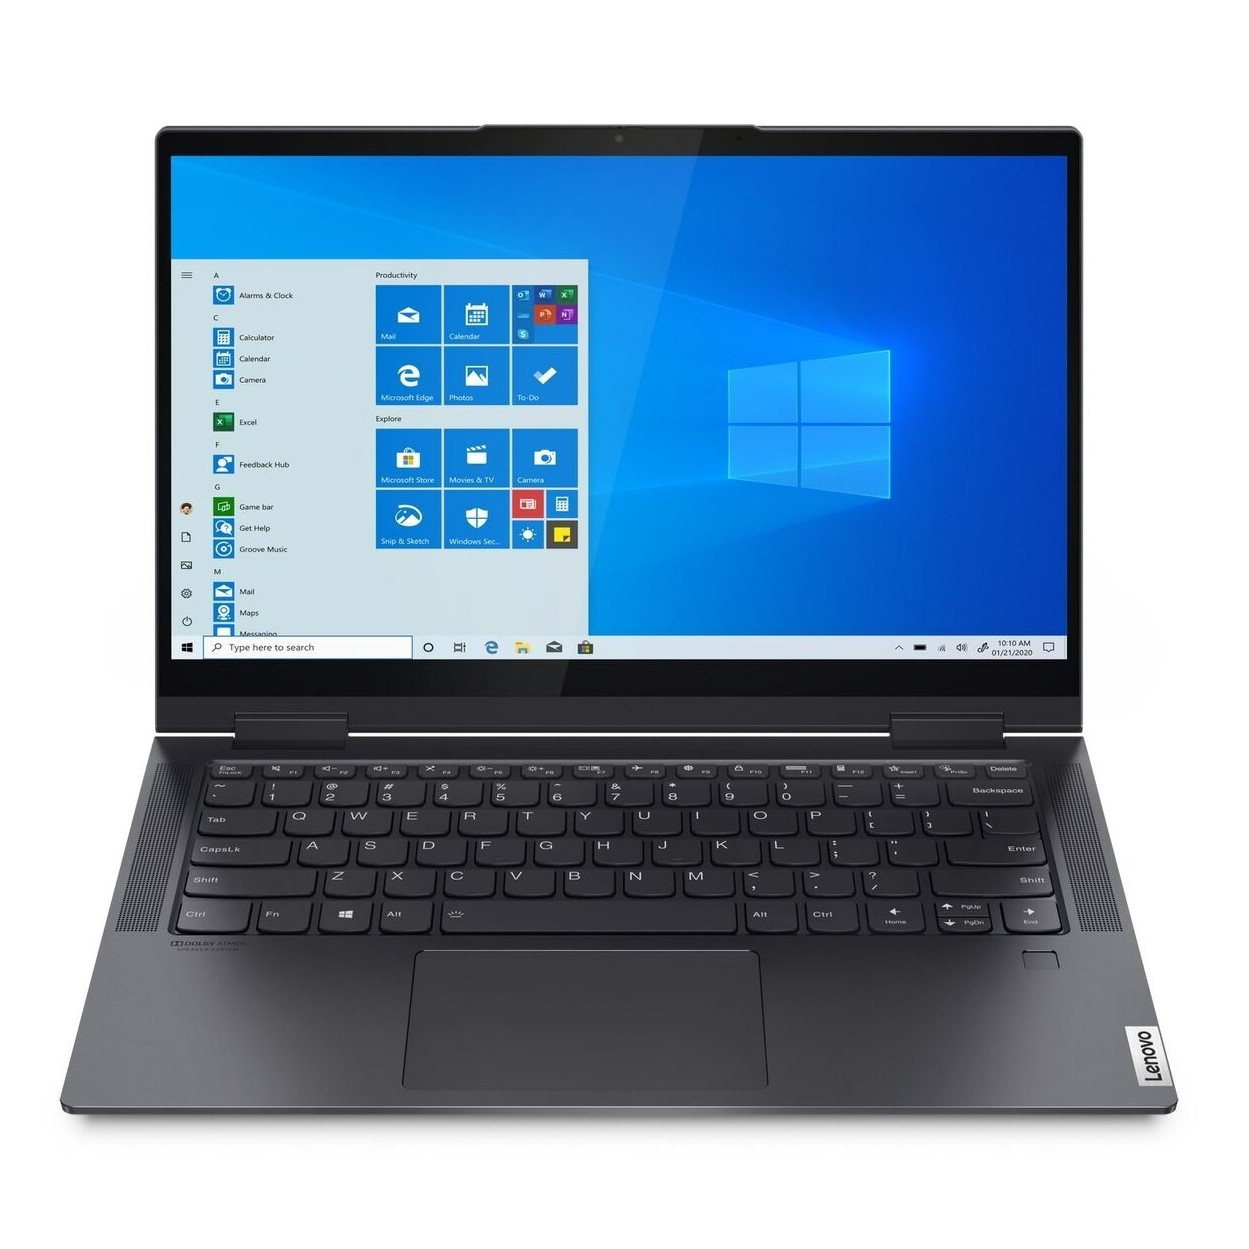 [New 100% Full box] Lenovo Yoga 7i - 14ITL5 i5-1135G7/ RAM 8GB/ SSD 512GB/ Intel Iris Xe G7/ 14 inch FHD IPS 100% sRGB